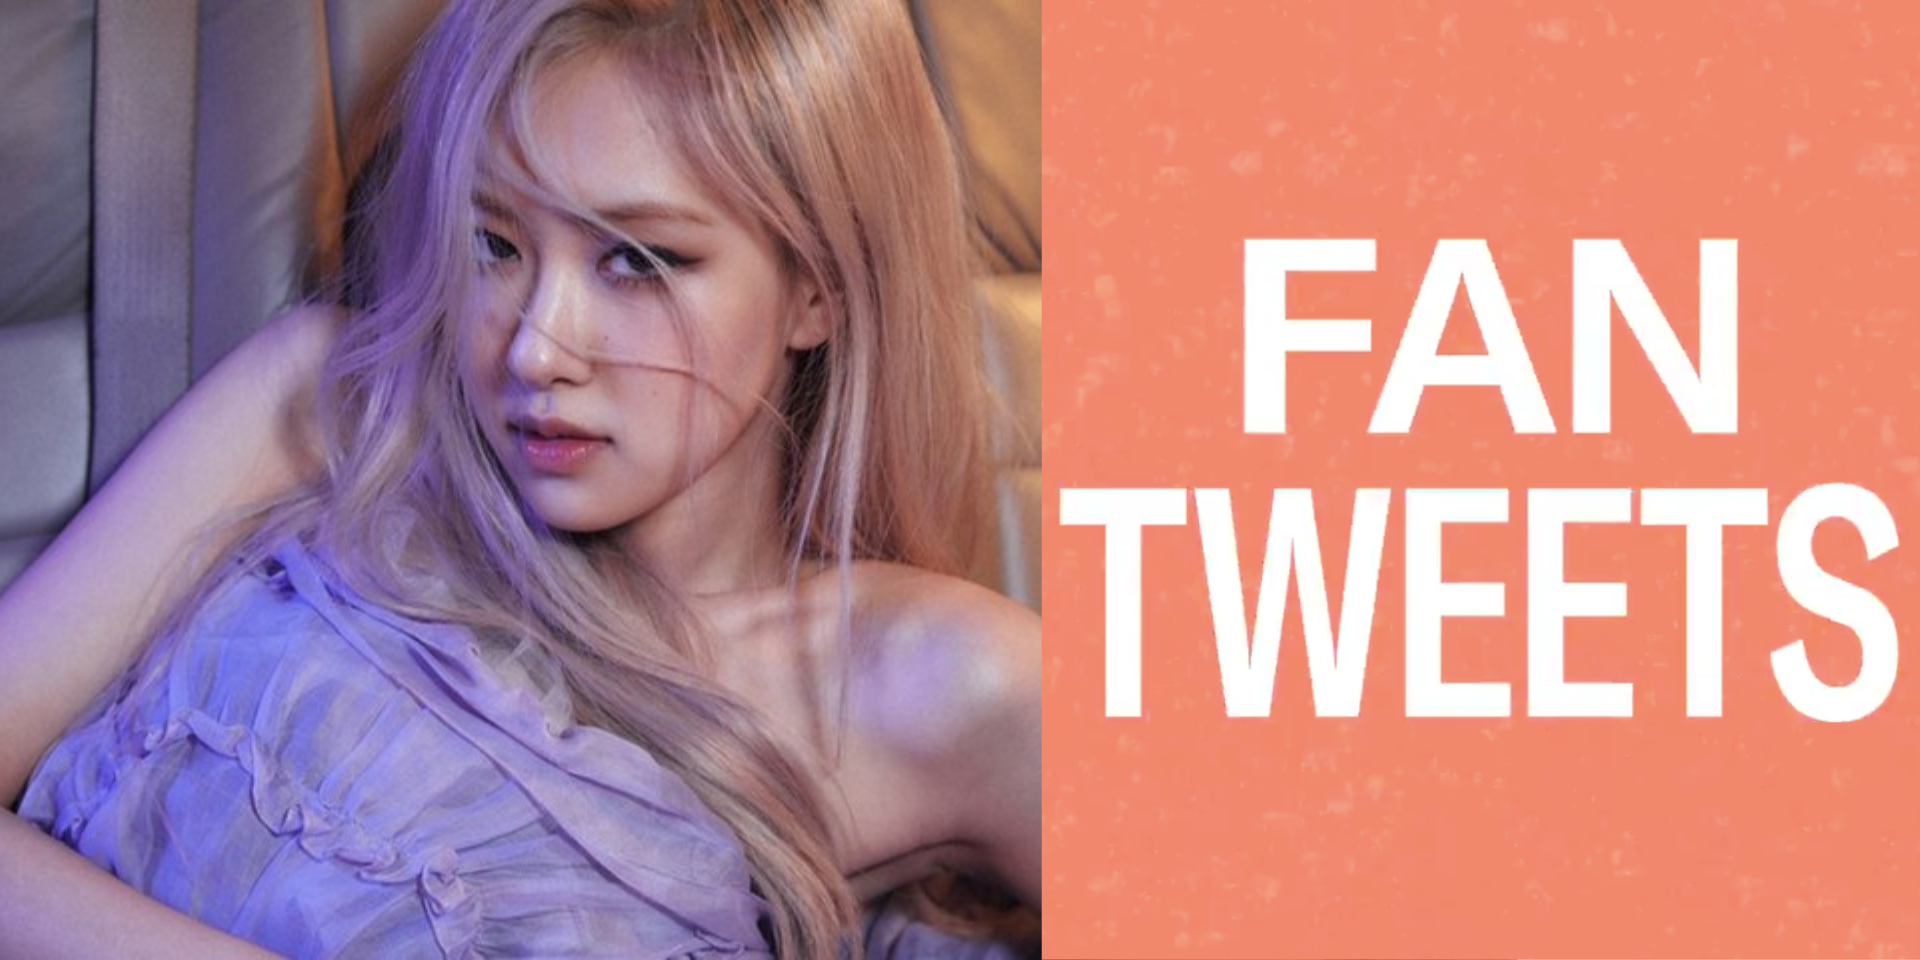 BLACKPINK's ROSÉ chats about life, performing, and her dog on Twitter's #FanTweets